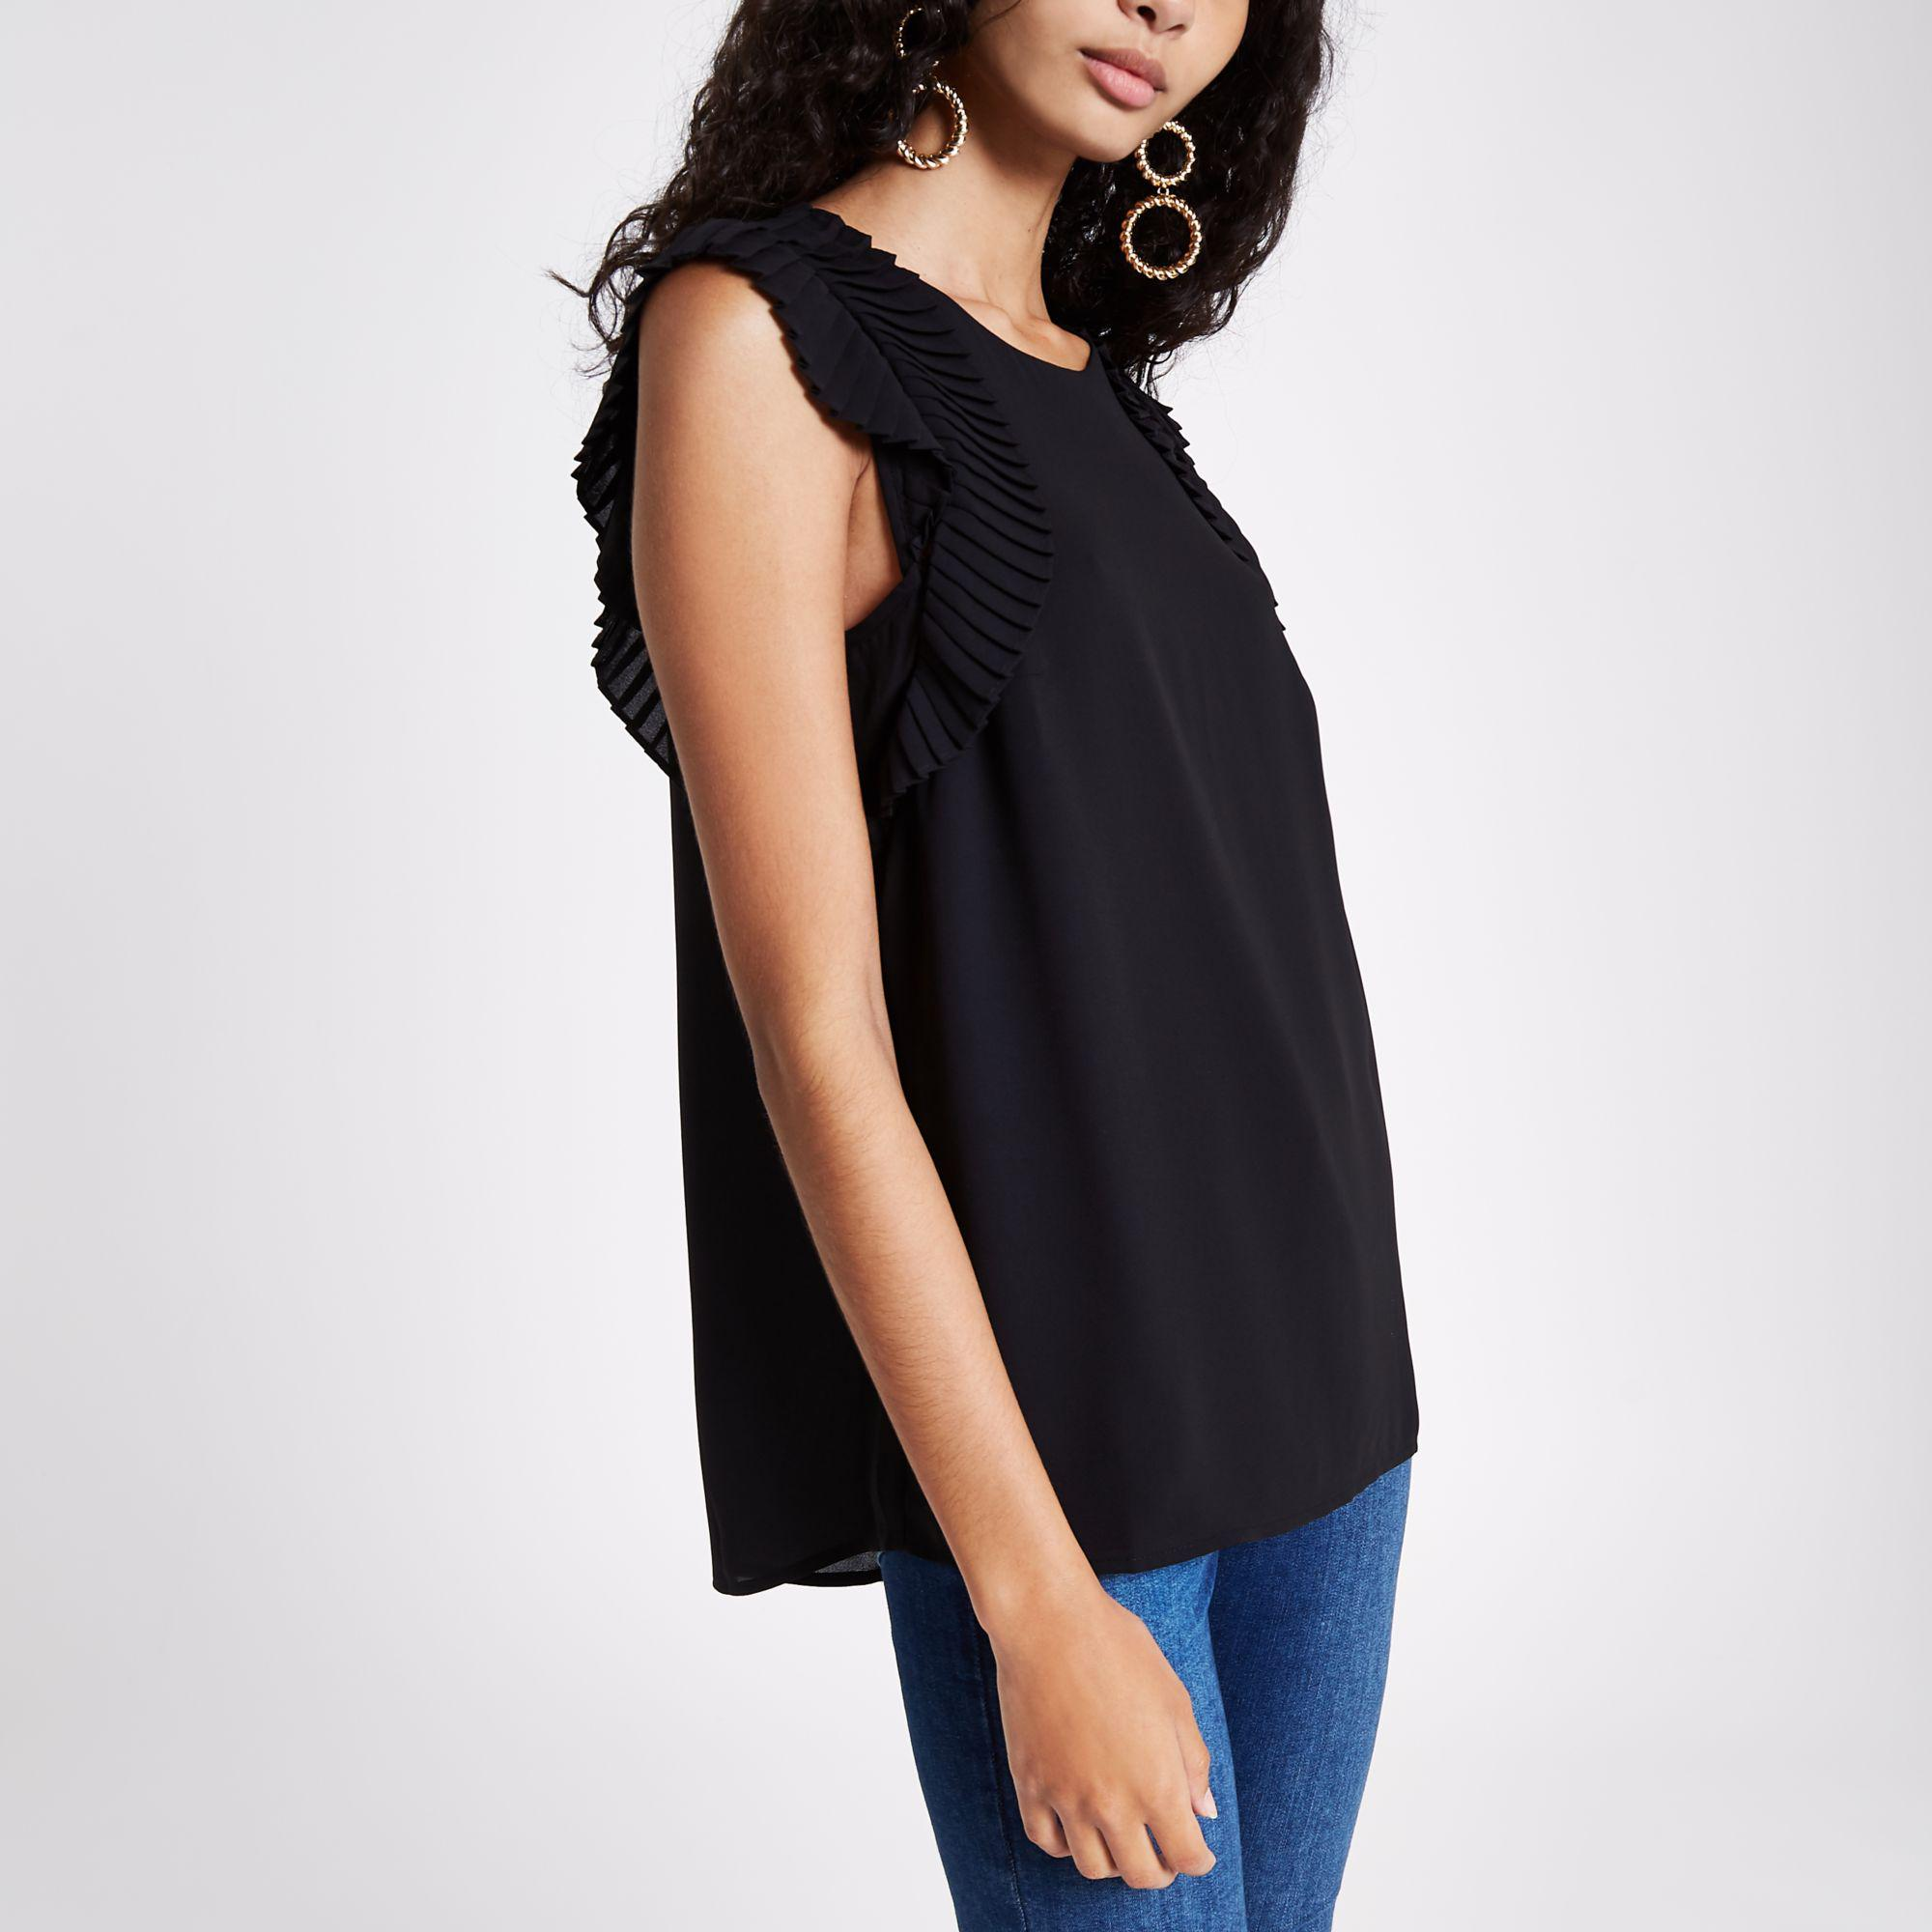 dae14eb883ad7 Lyst - River Island Black Pleated Shoulder Top in Black